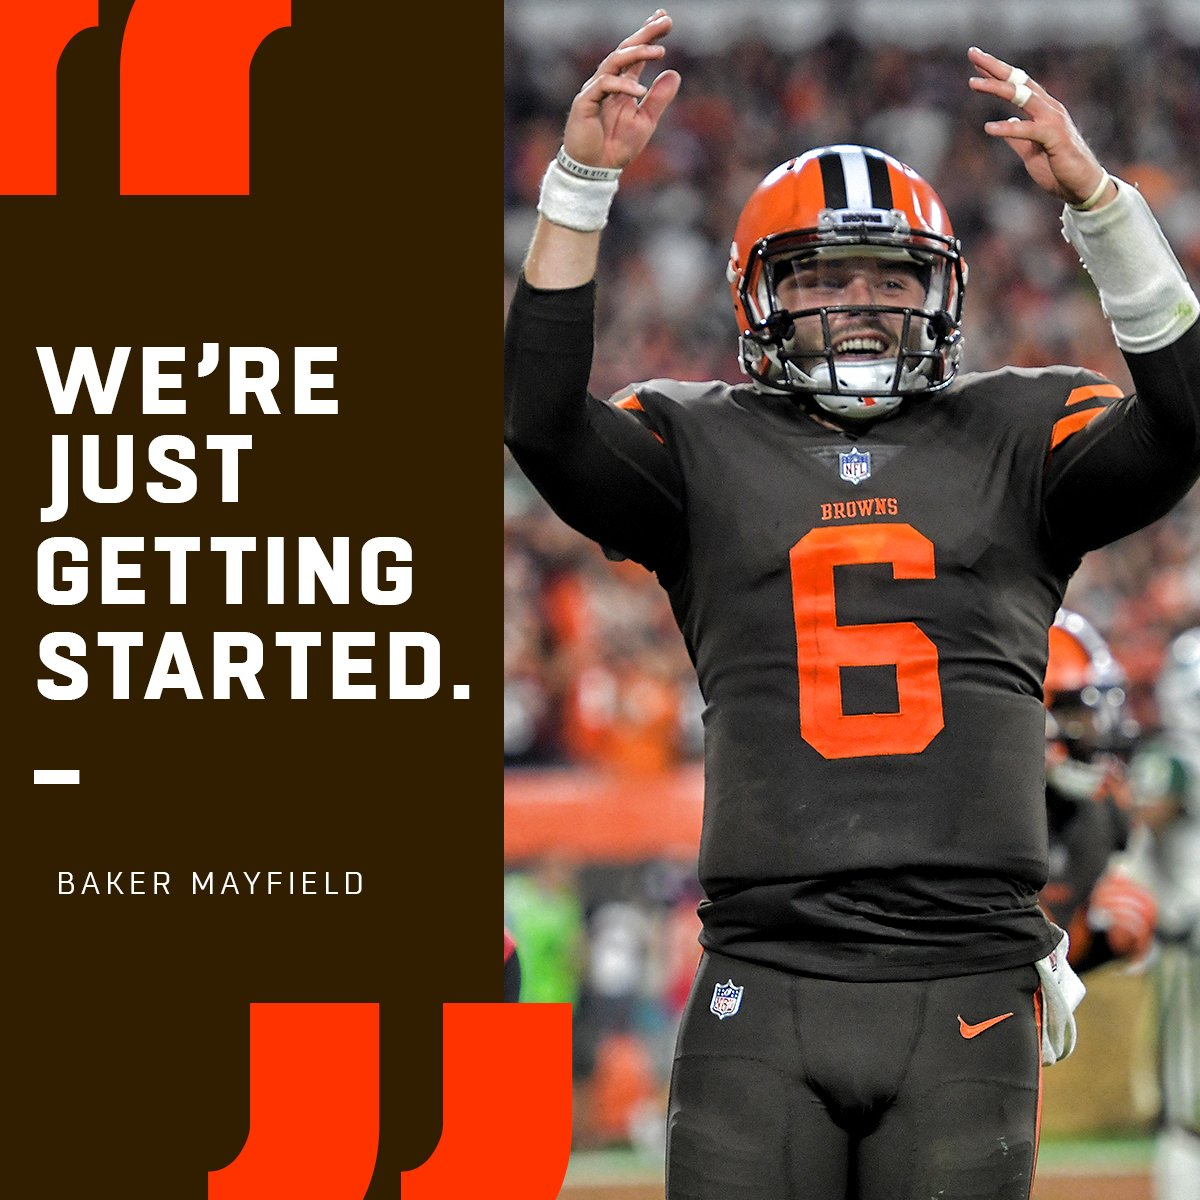 That was only the beginning for @bakermayfield + the @Browns.  #Browns https://t.co/Rh9TzoV1VF